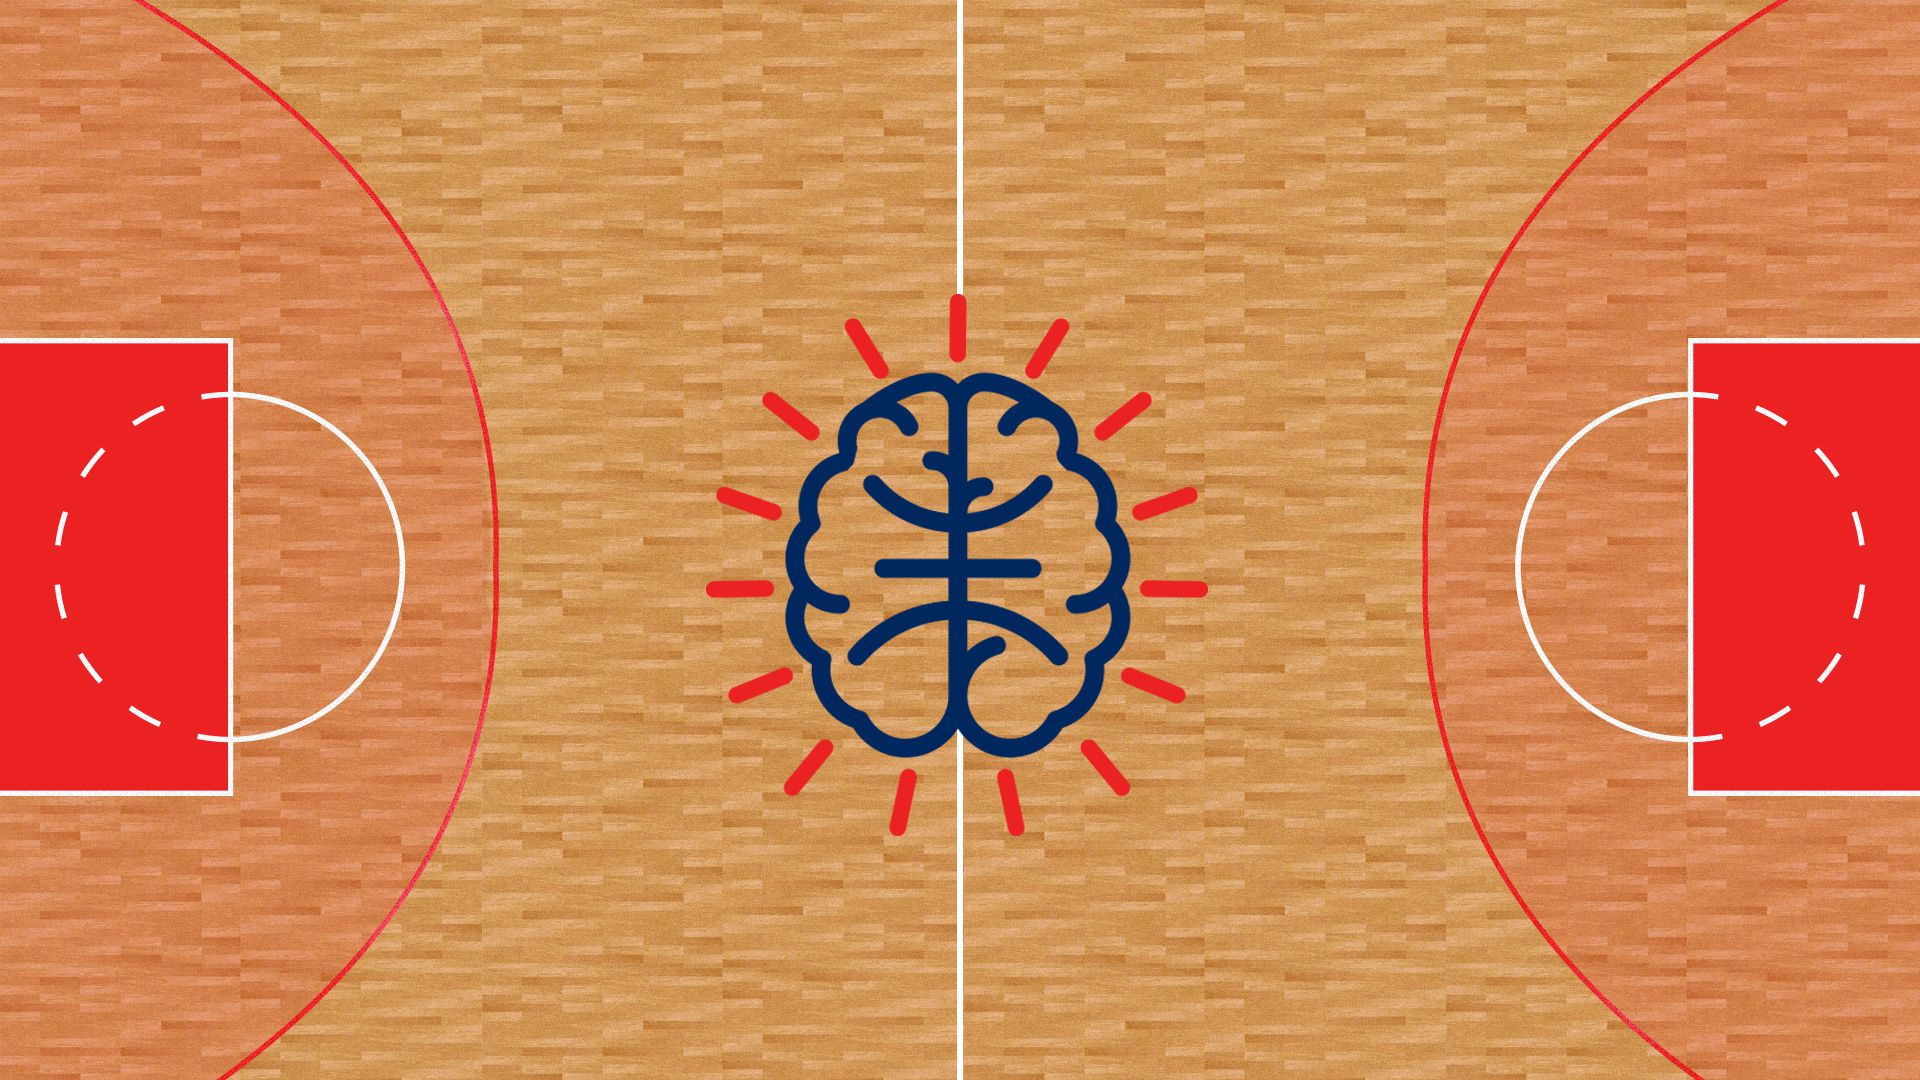 A brain painted at a half court